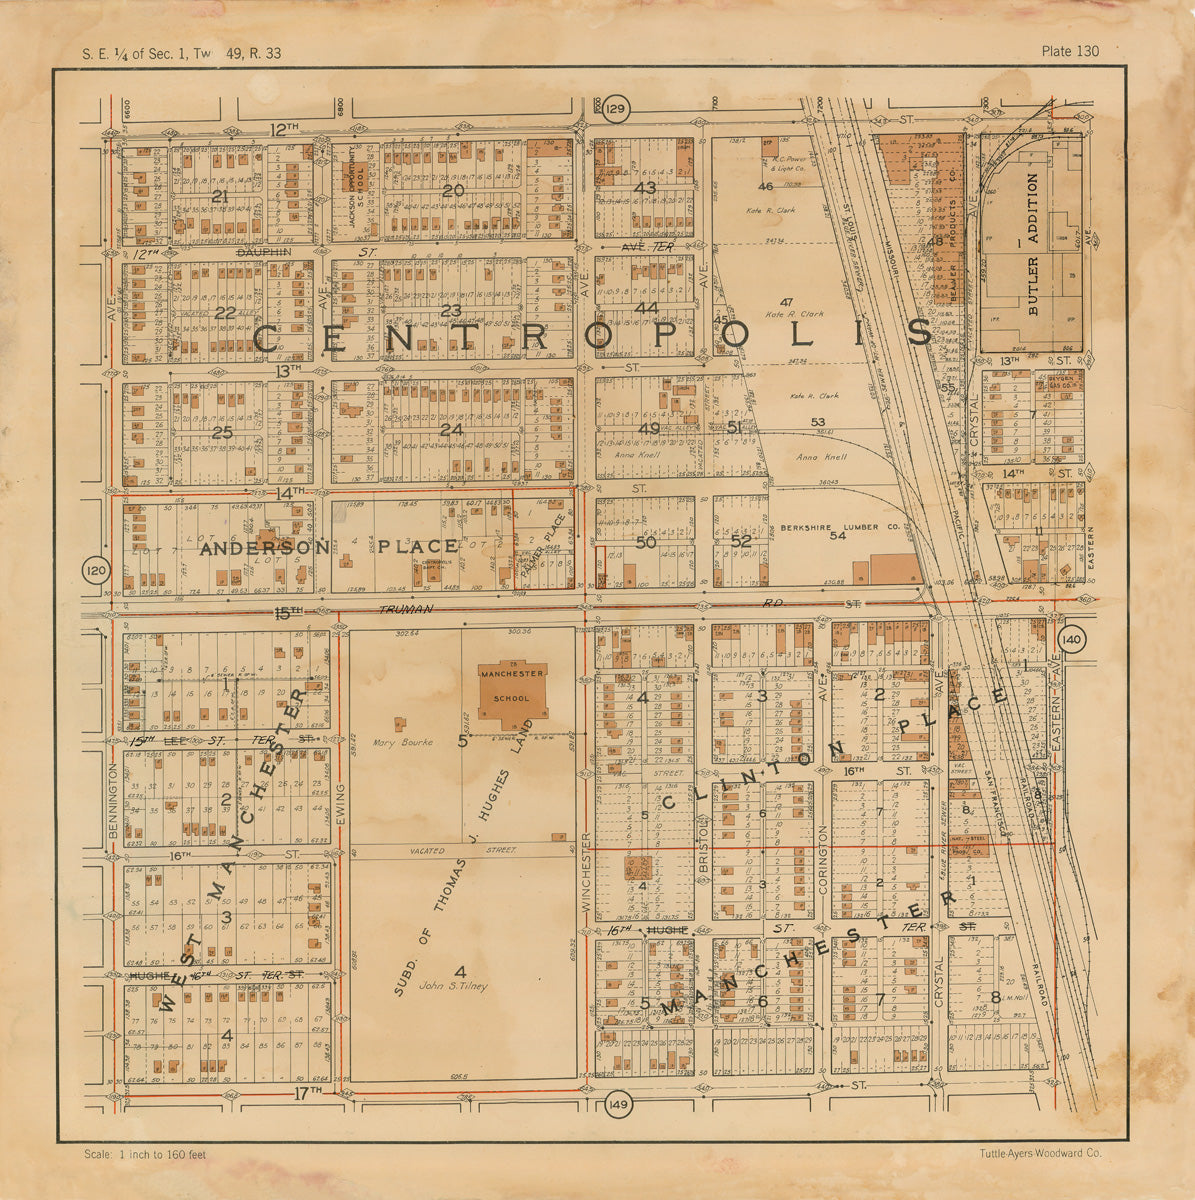 Kansas City 1925 Neighborhood Map - Plate #130 12th-17th Bennington-Crystal